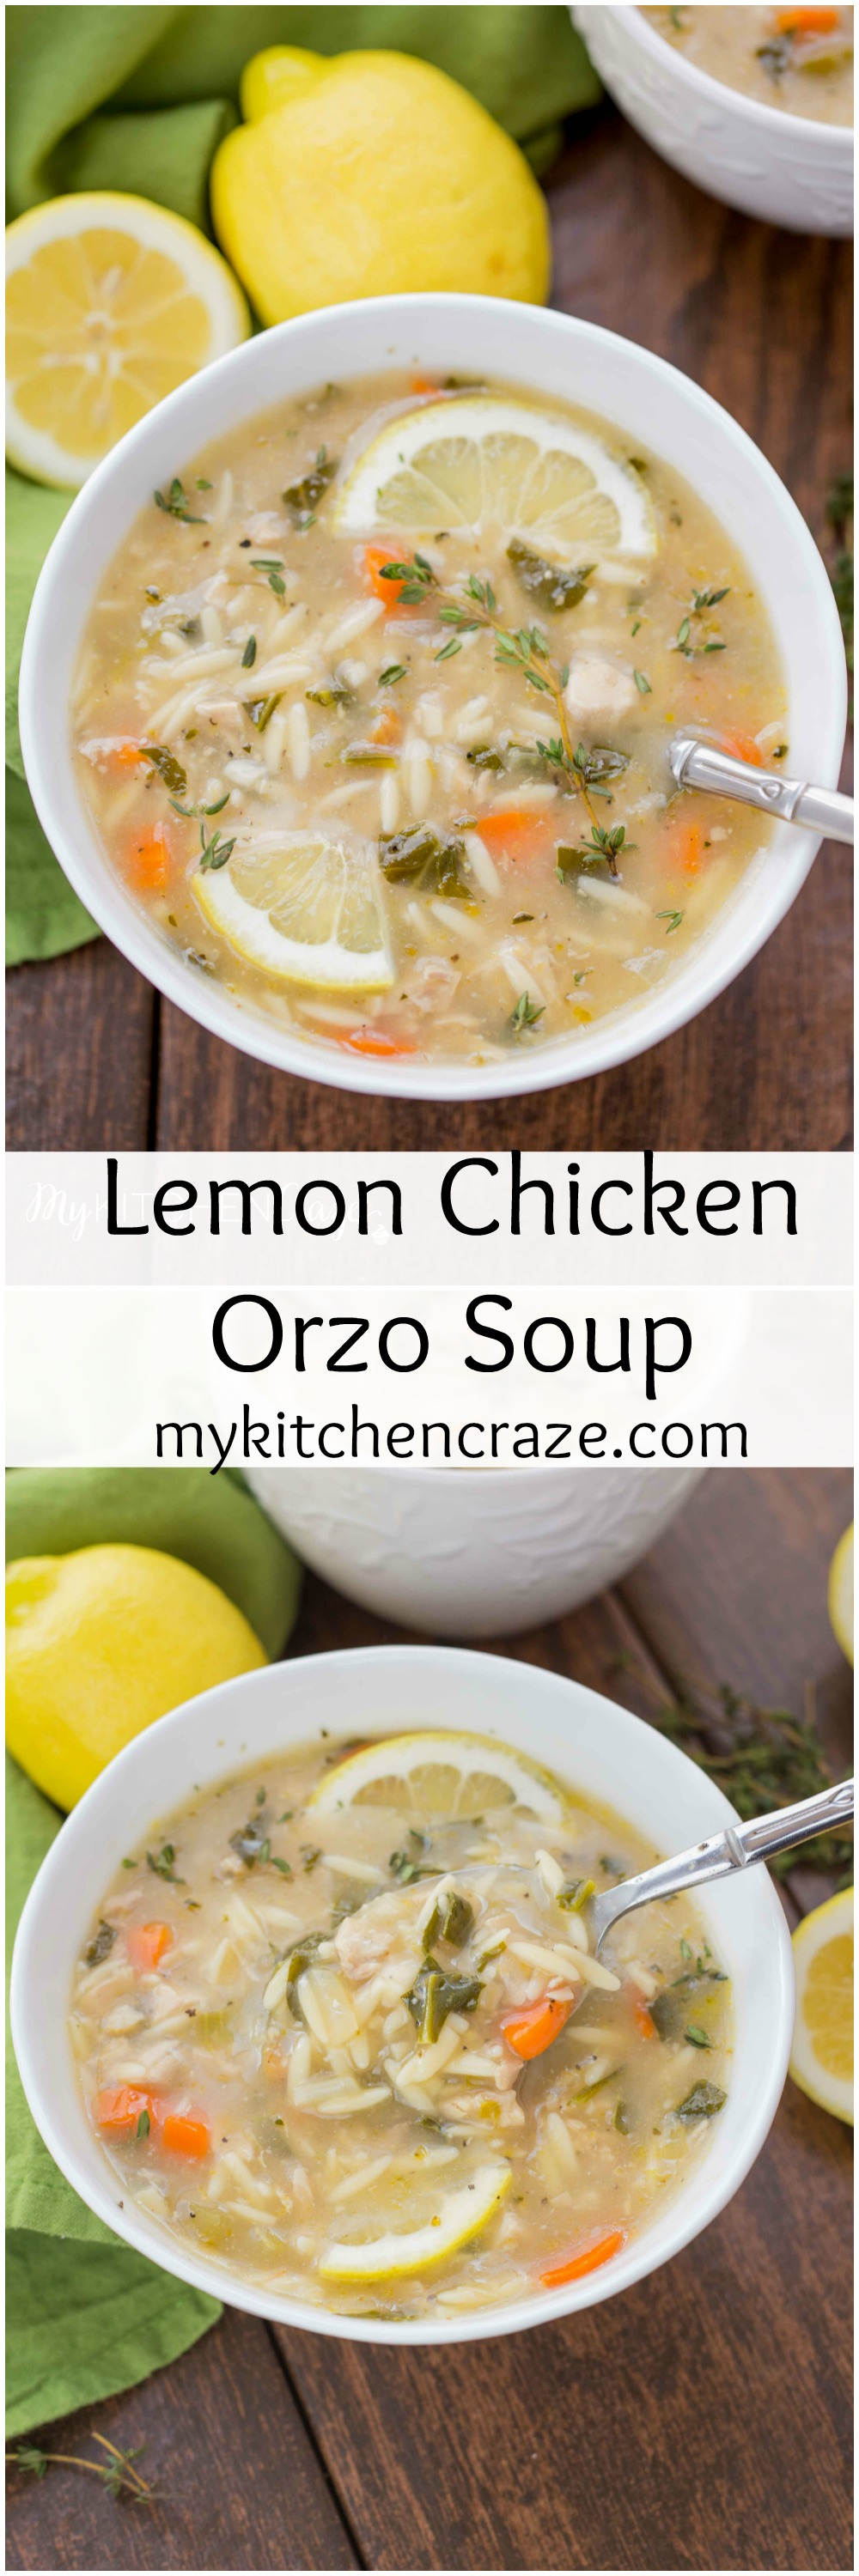 Lemon Orzo Soup ~ mykitchencraze.com ~ Enjoy this delicious soup any time of the year. Perfect when you're under the weather or just craving a light refreshing soup!